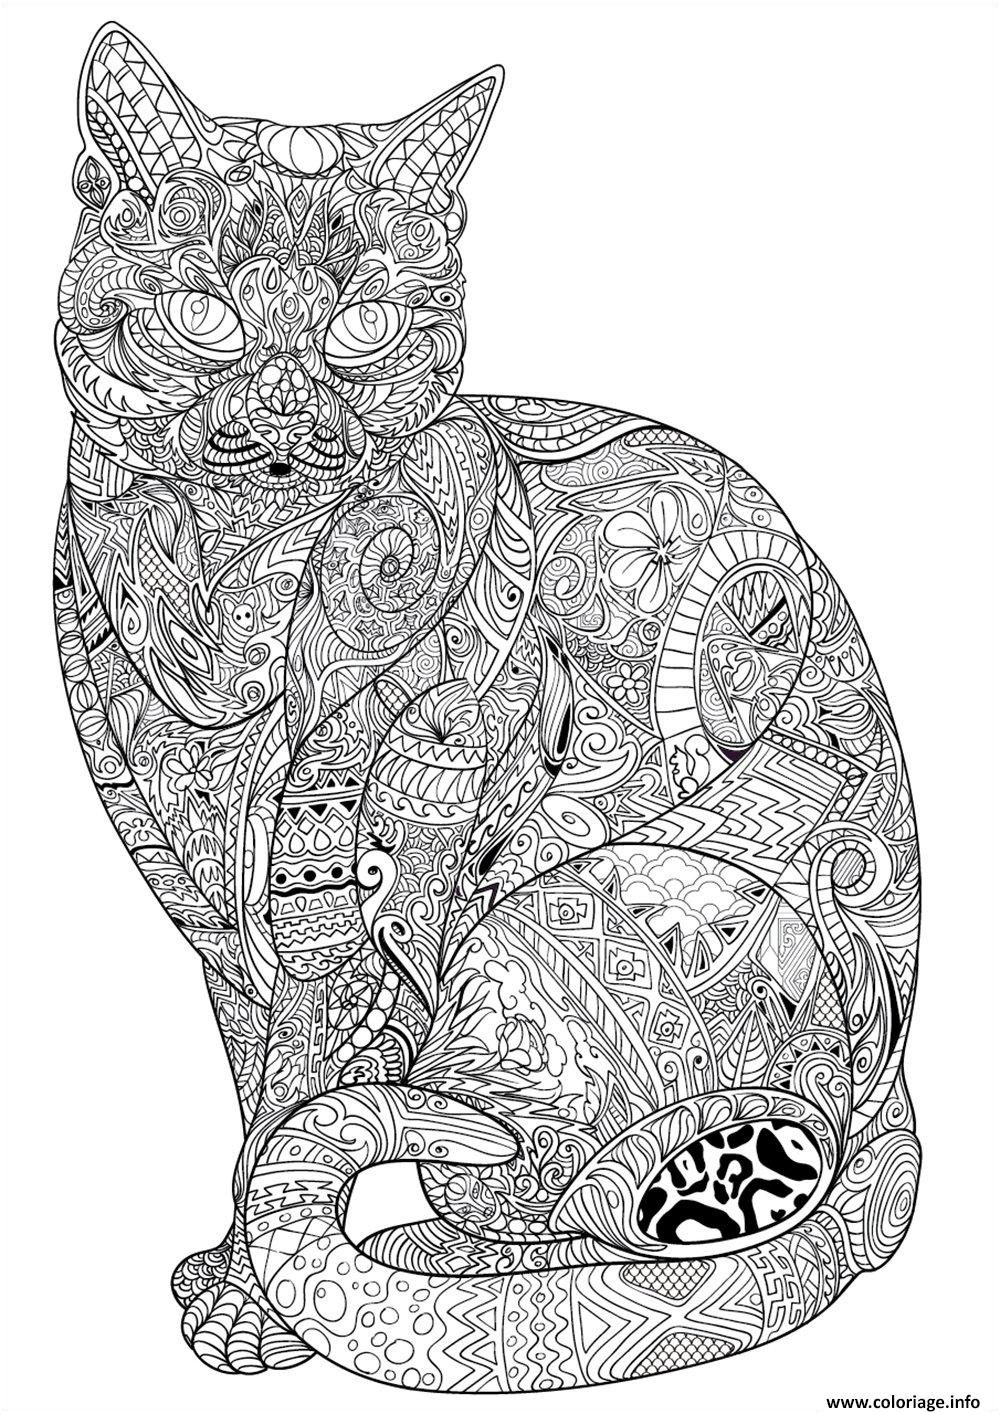 9 Ideal Coloriage Mandala Chat Gallery Coloriage Mandala Animaux Coloriage Coloriage Chat